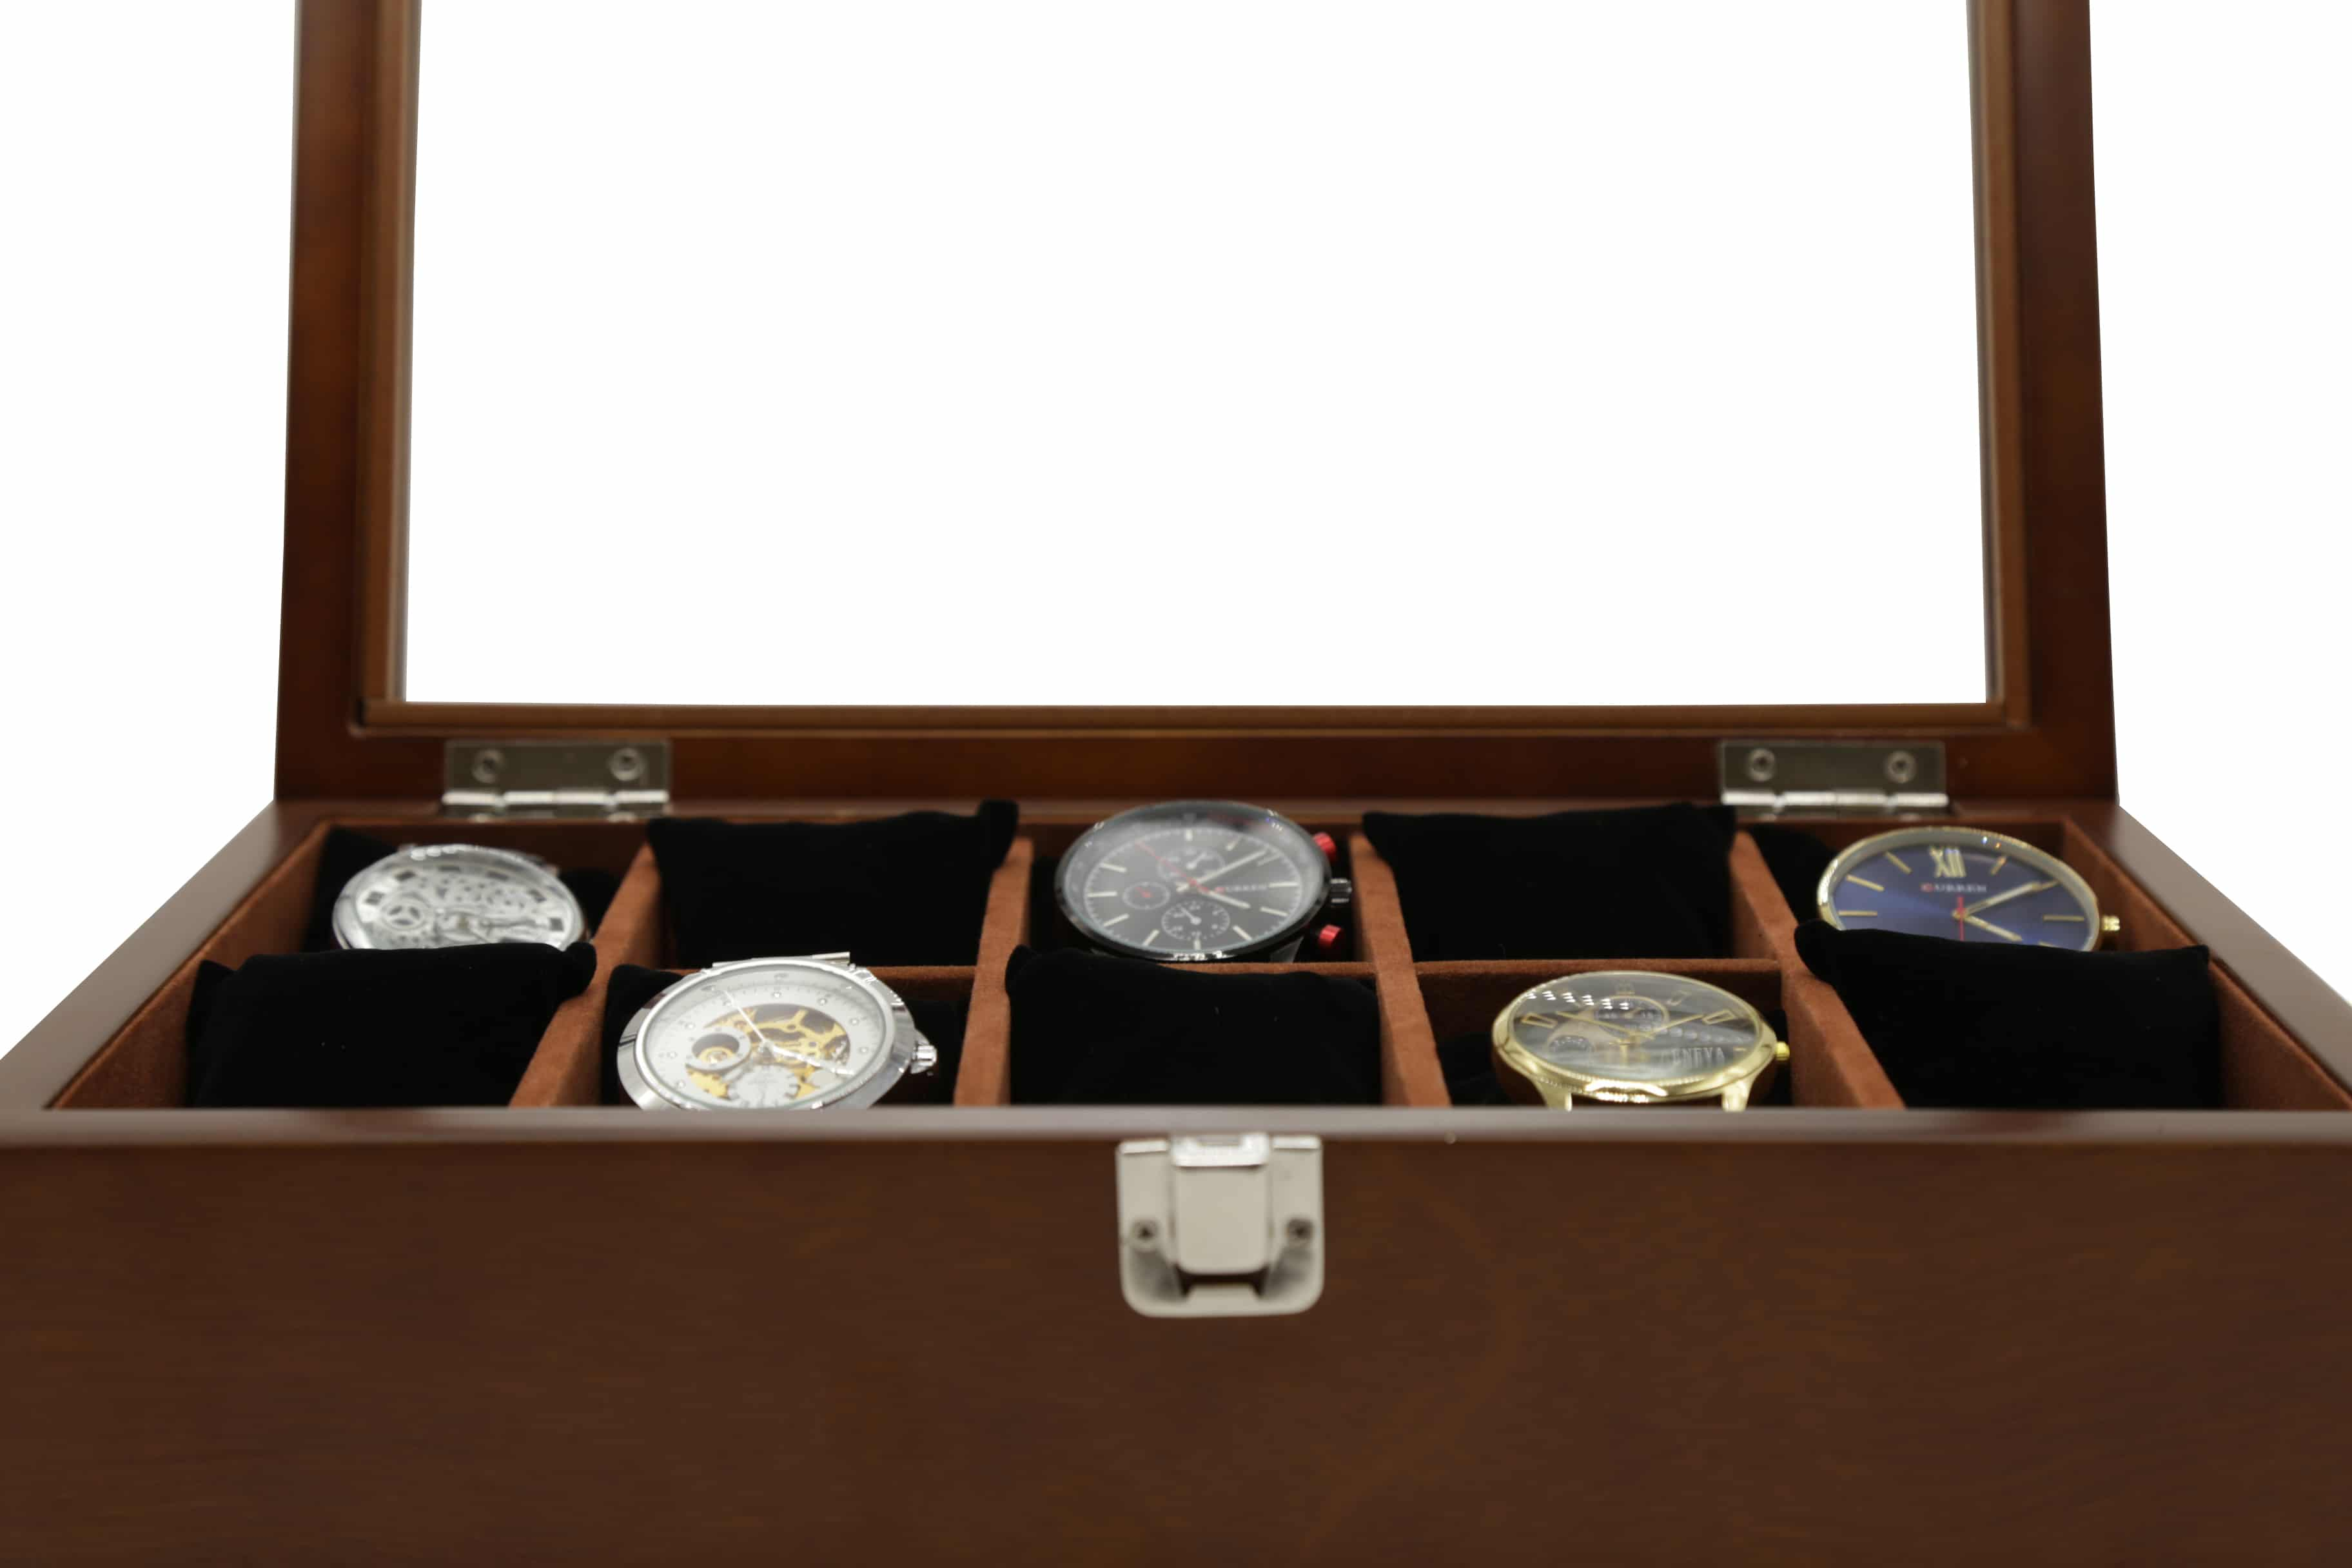 golden-pecan-10-slot-watch-box-4